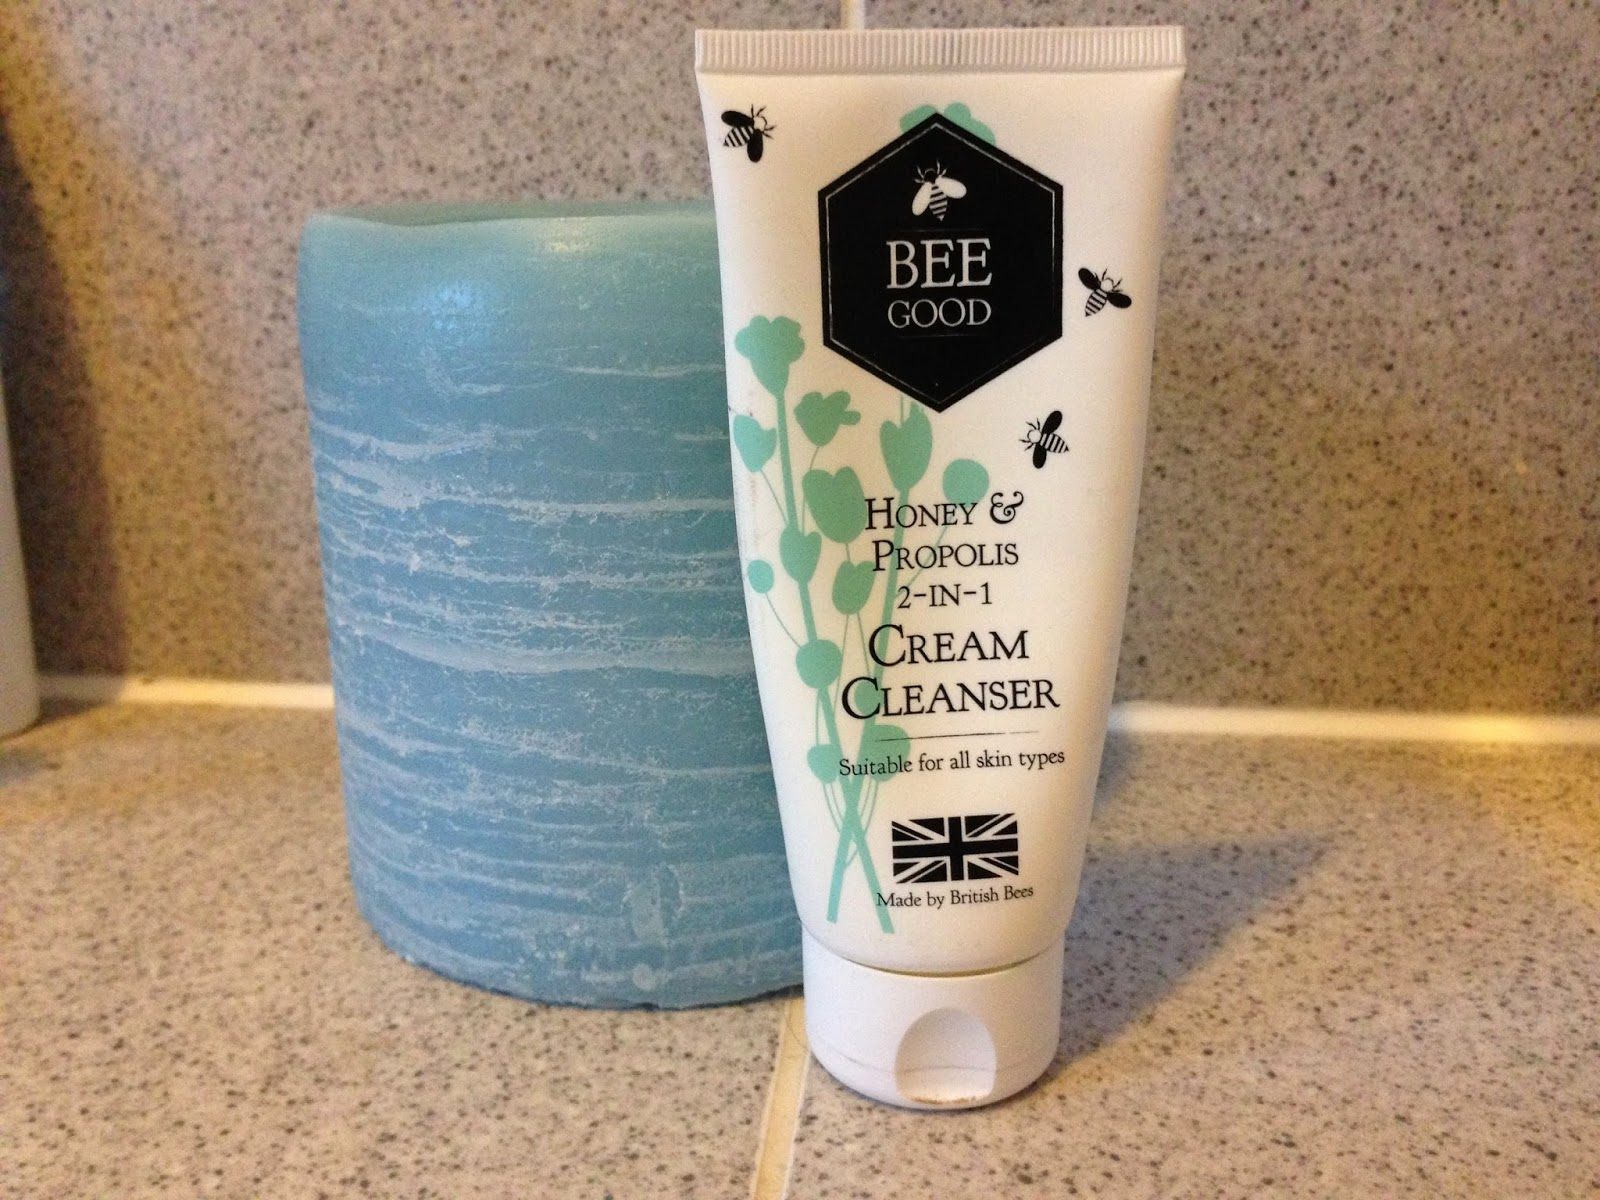 Bee Good 2-in-1 Cream Cleanser